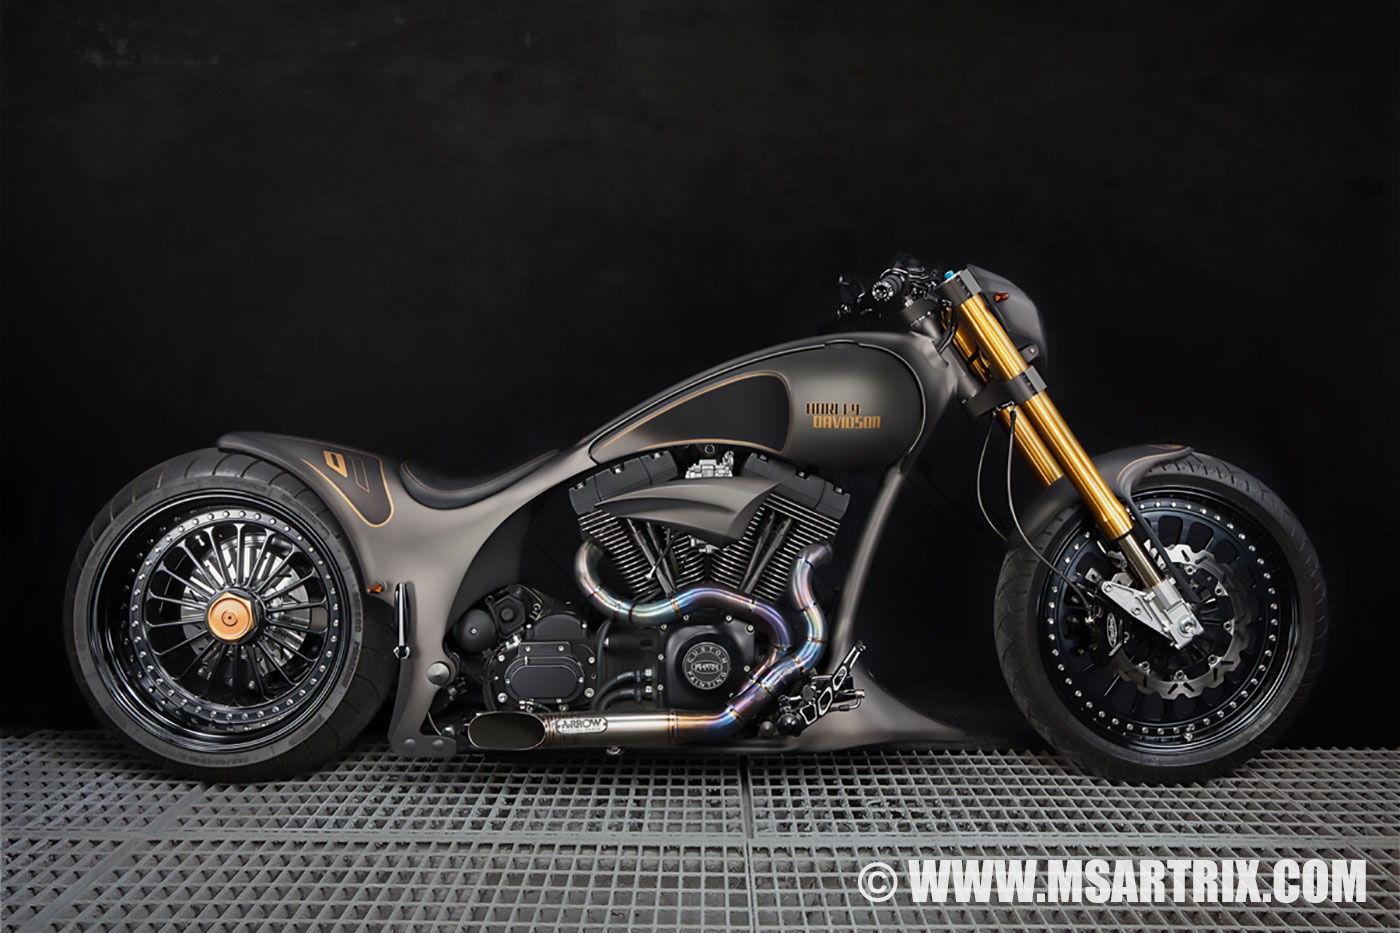 Black Gold Custom Harley Davidson Bikes Ms Artrix Design